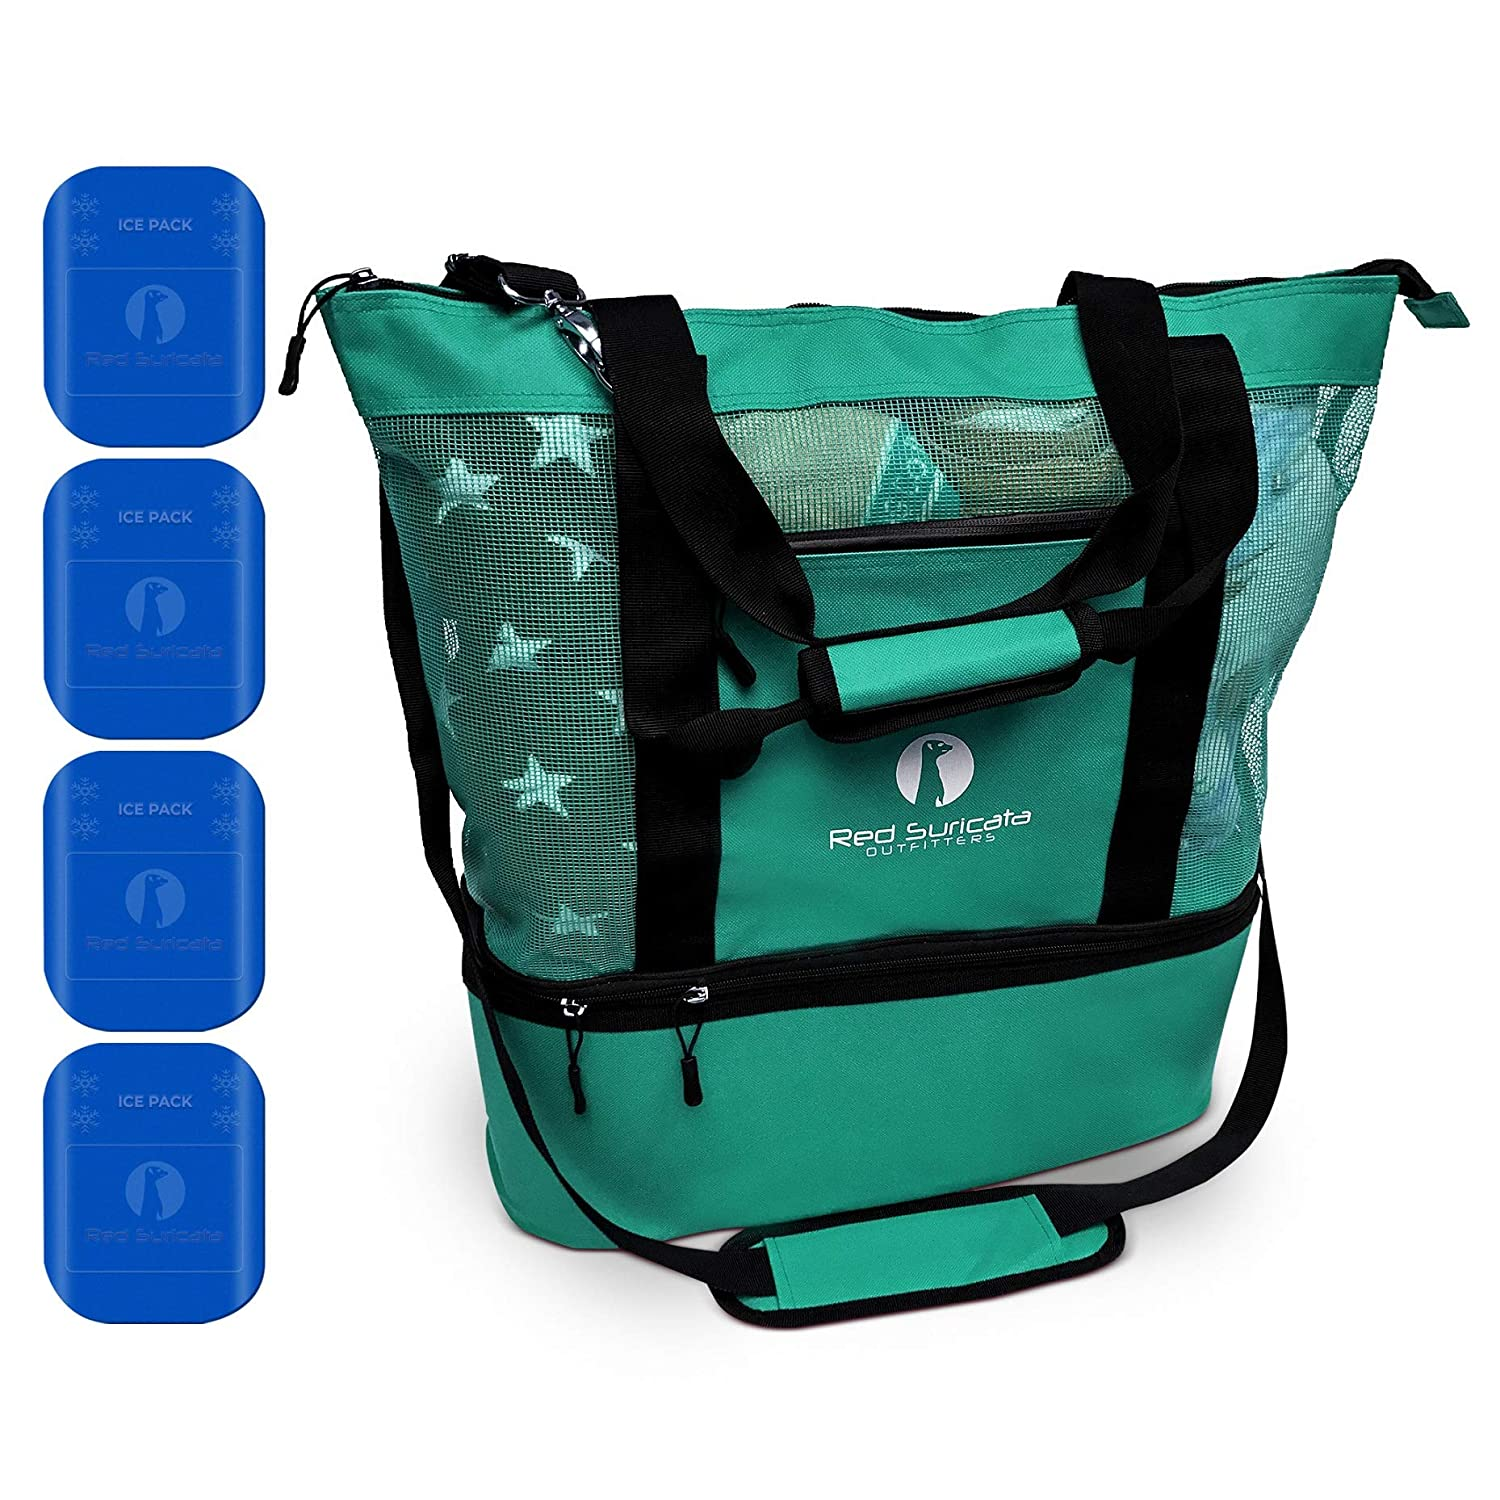 Red Suricata Mesh Beach Bag Cooler – Beach Tote with Leak-proof Rigid Cooler Beach Bags for Women Men Turquoise Green